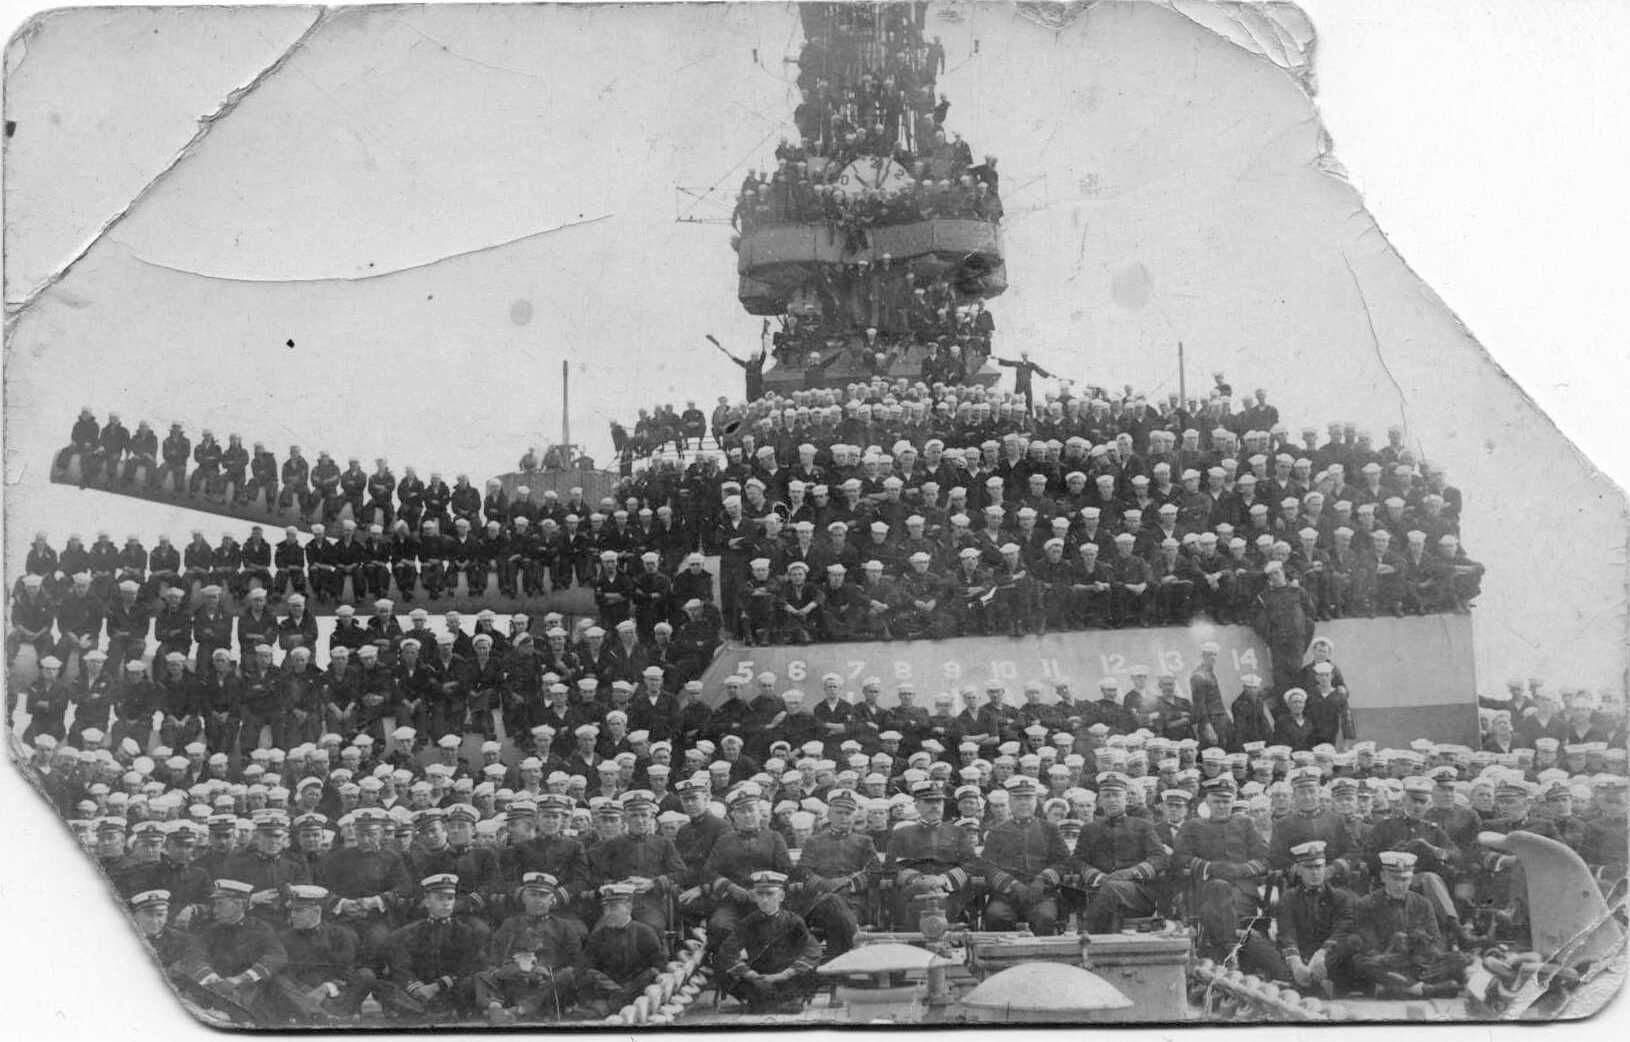 Sailors on the deck of the ship